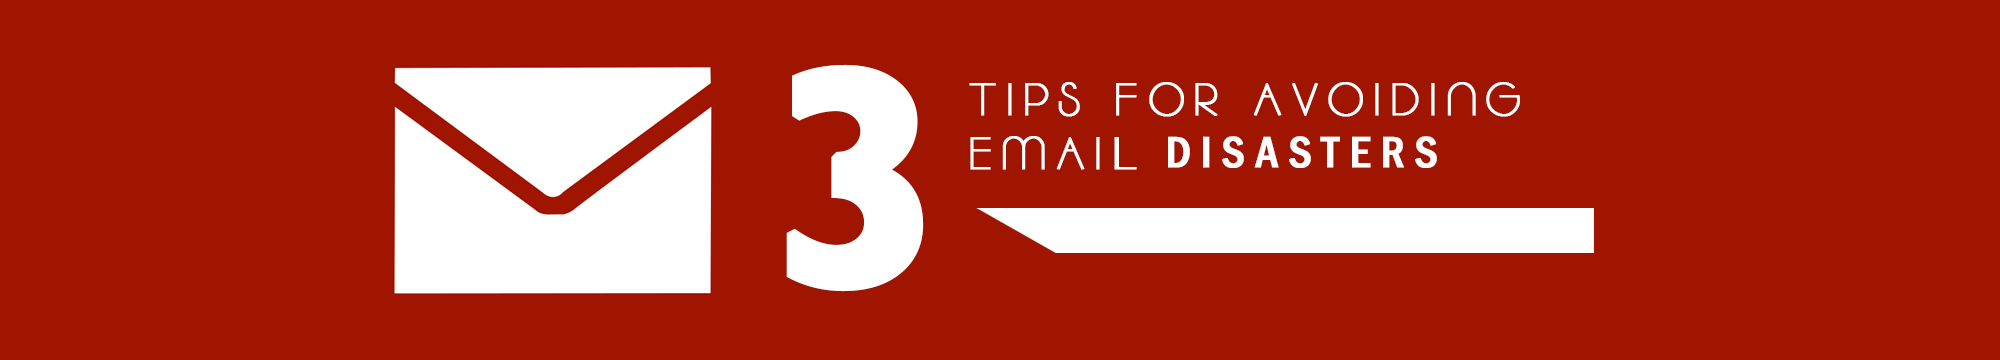 Three-Tips-for-Avoiding-Email-Disasters